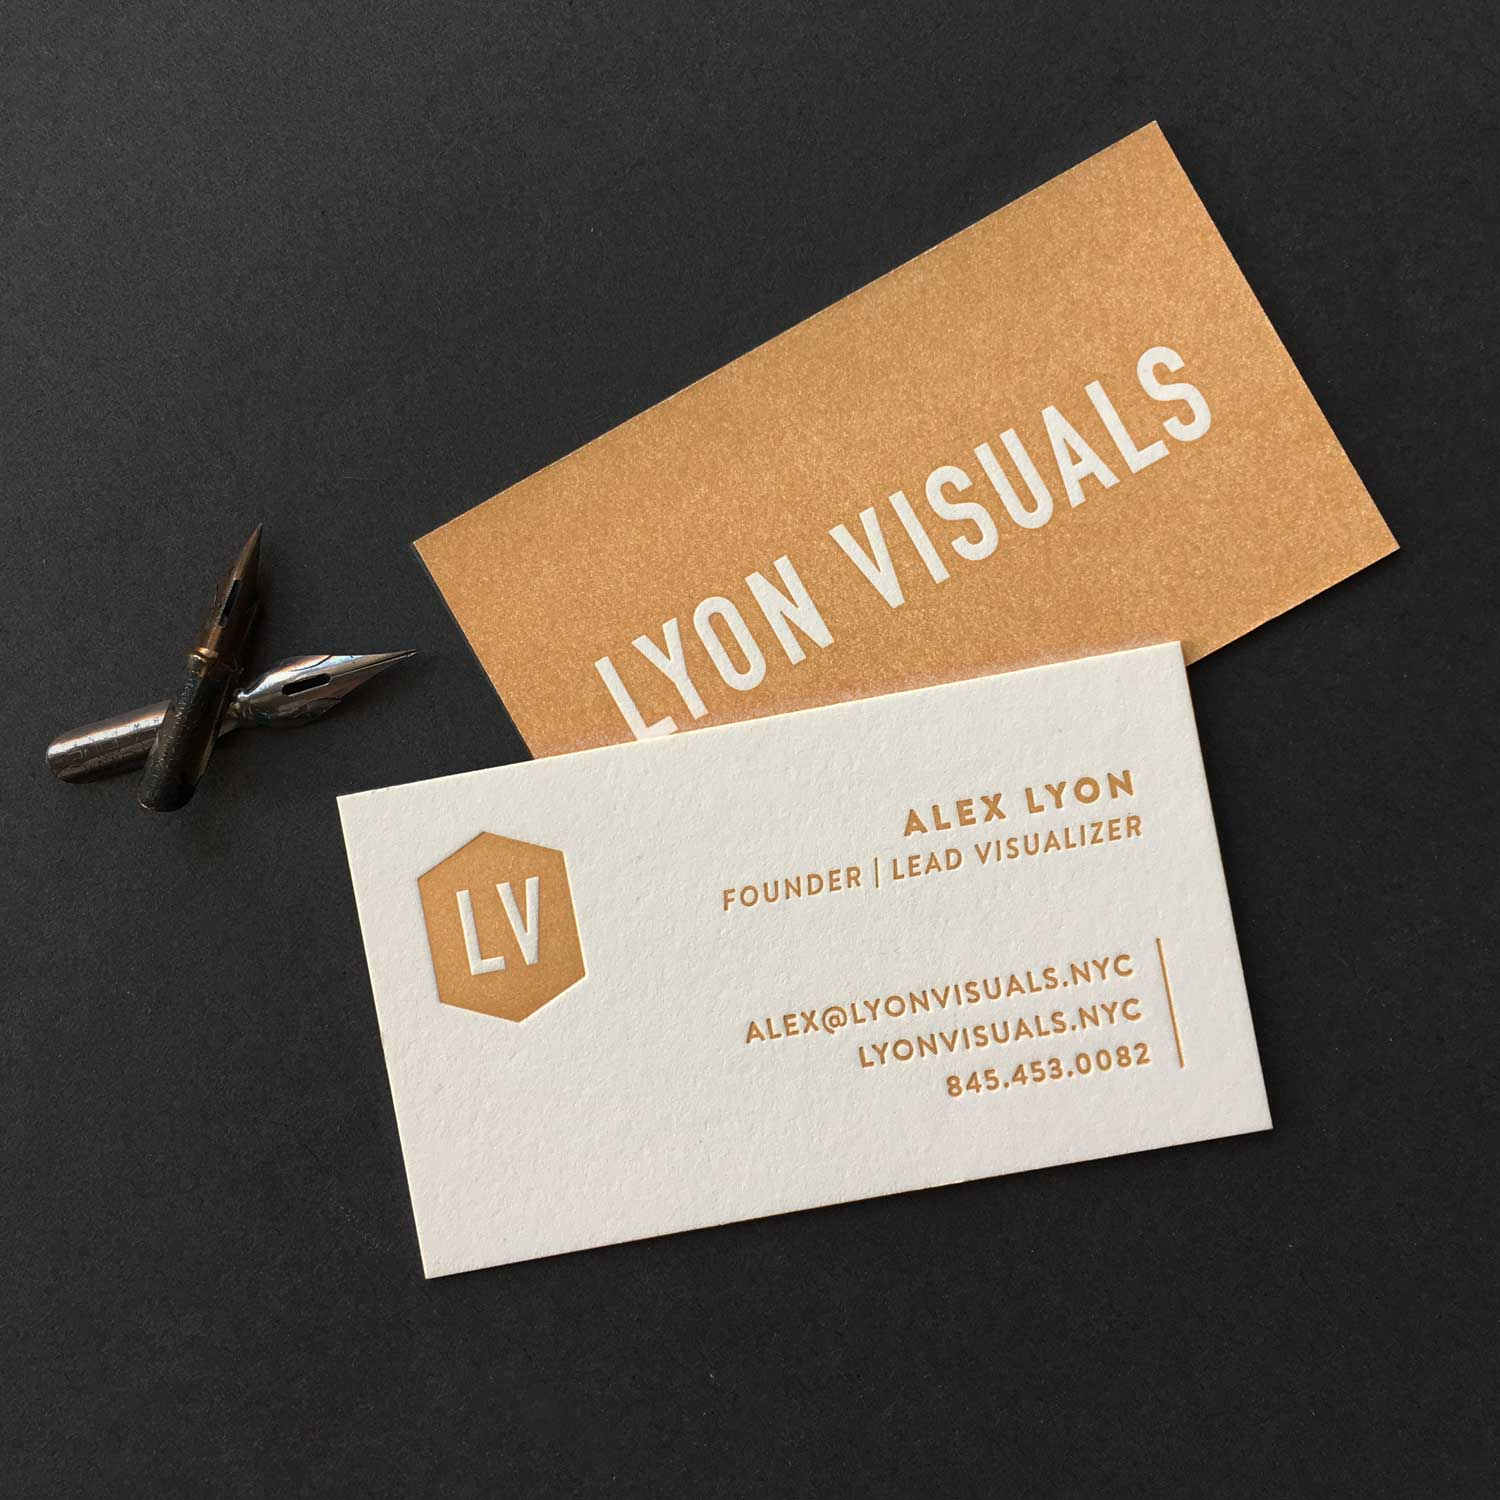 LV_BusinessCards1c.jpg